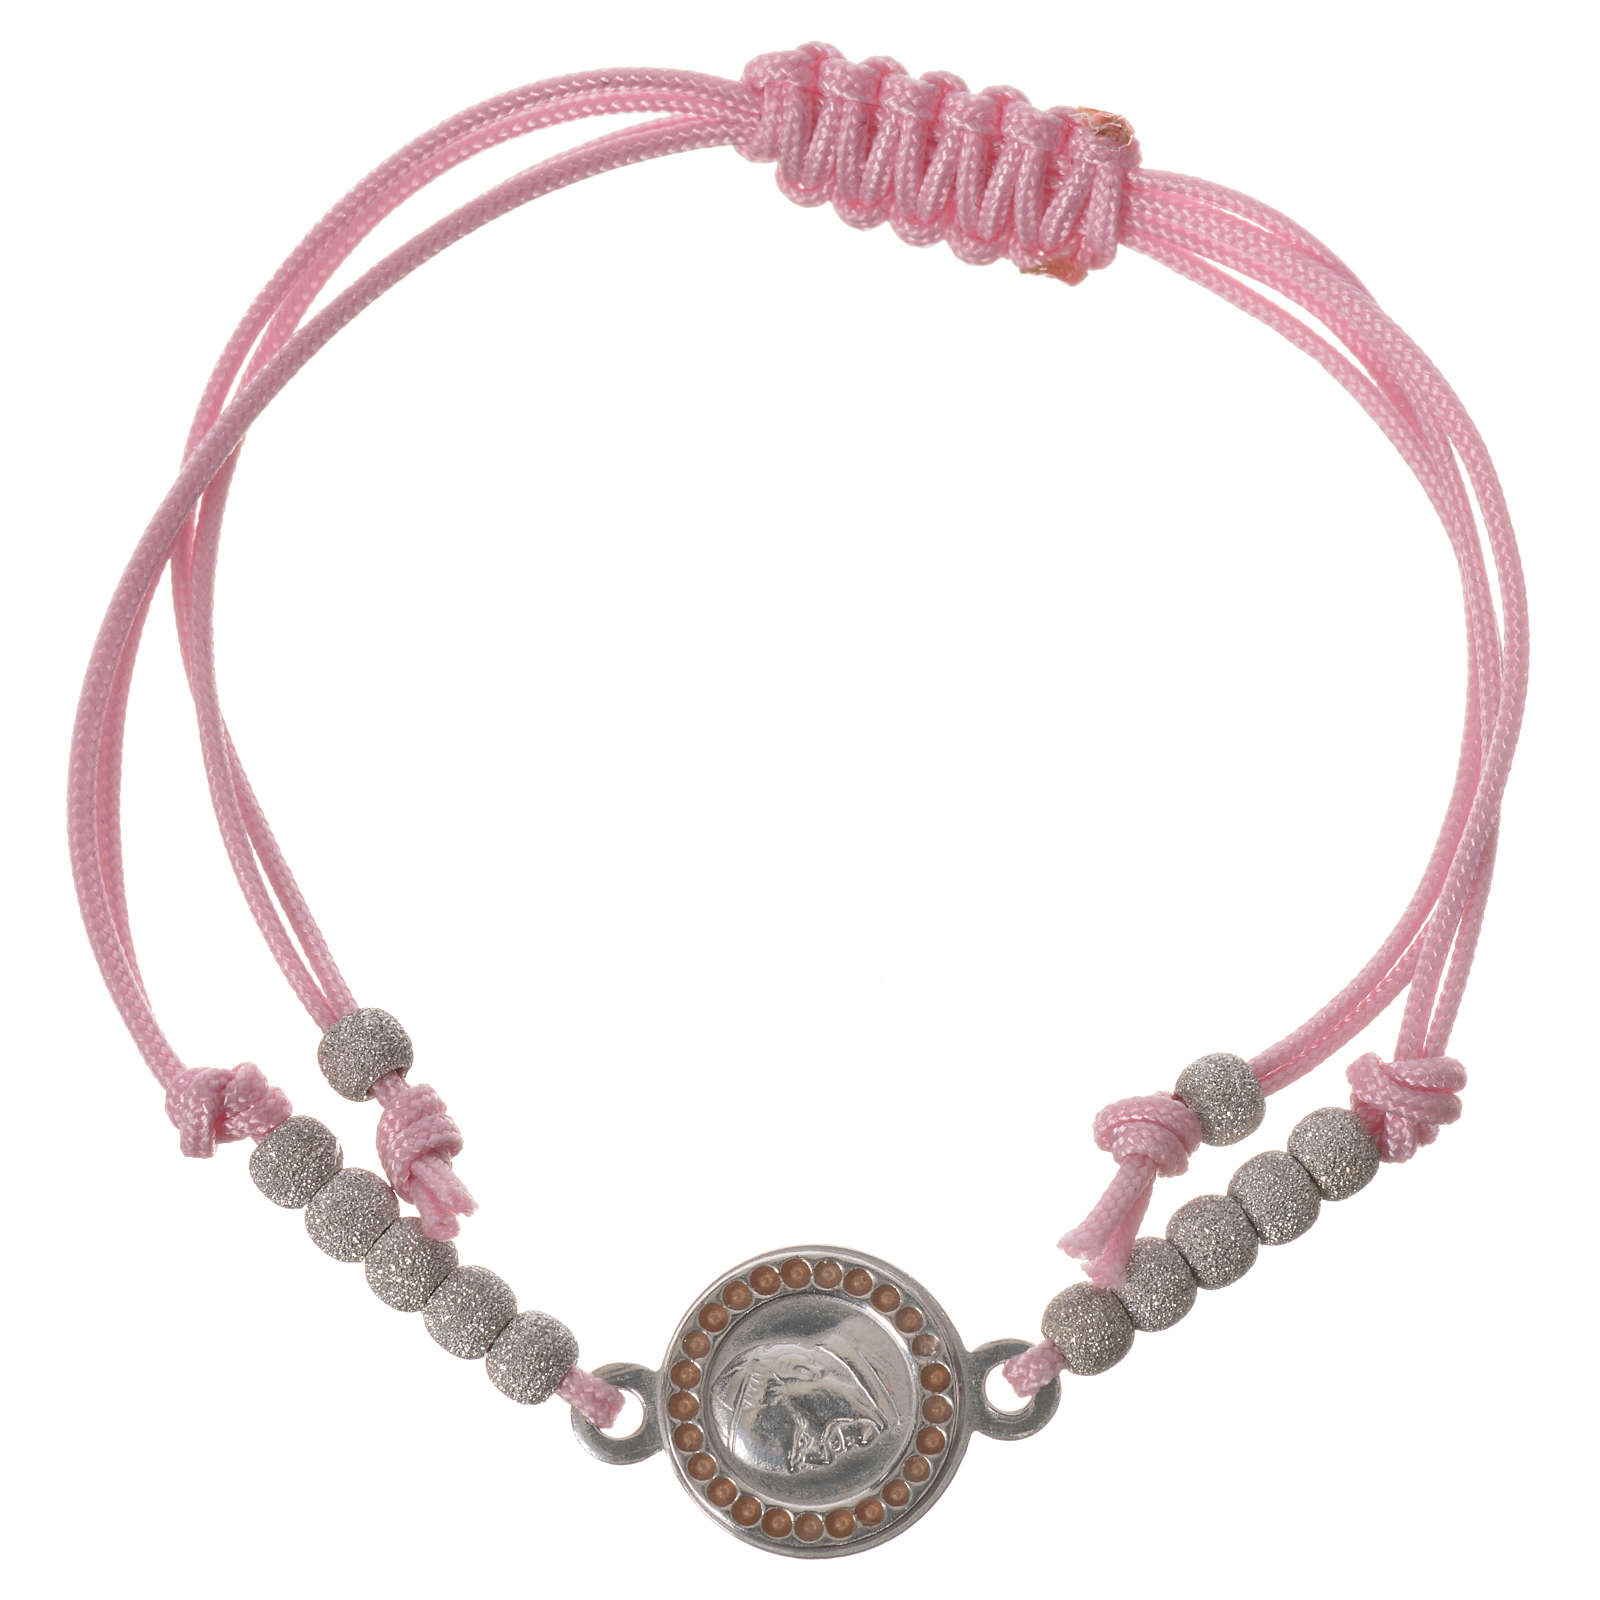 Bracelet with pink cord and Pope Francis medal in 800 silver 4